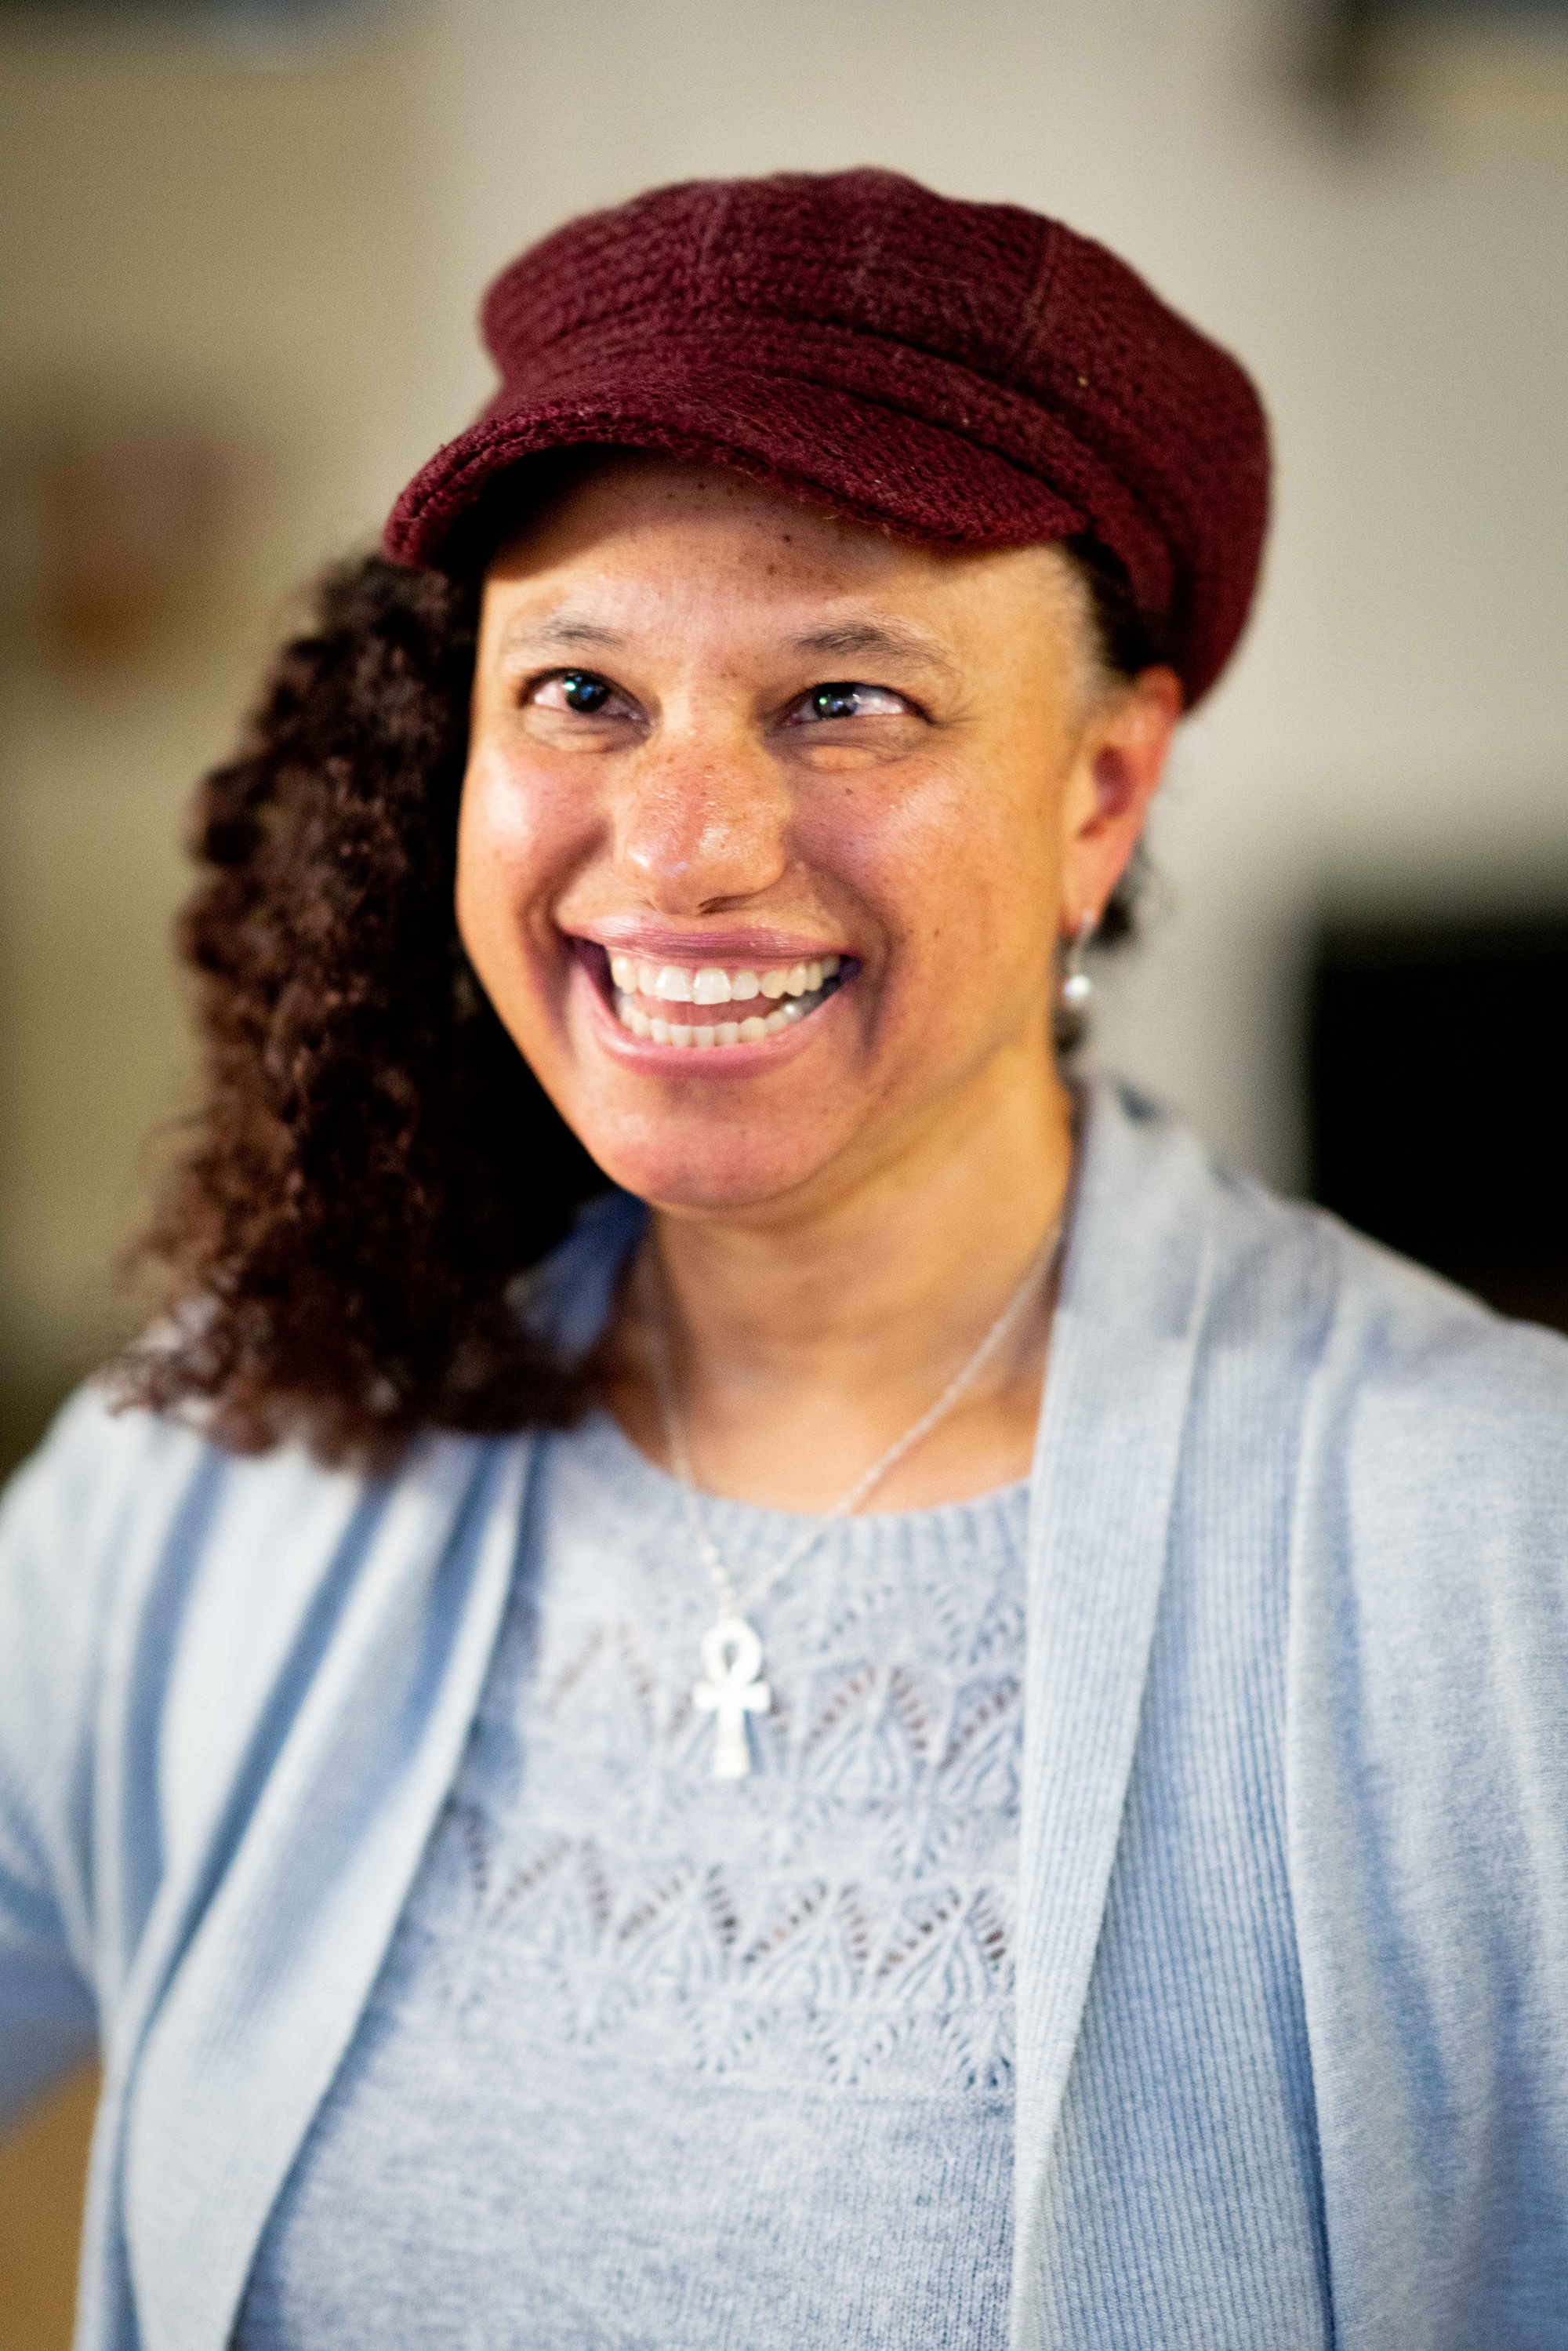 A medium close up of a smiling mixed race woman wearing grey. She has a burgundy knitted hat.